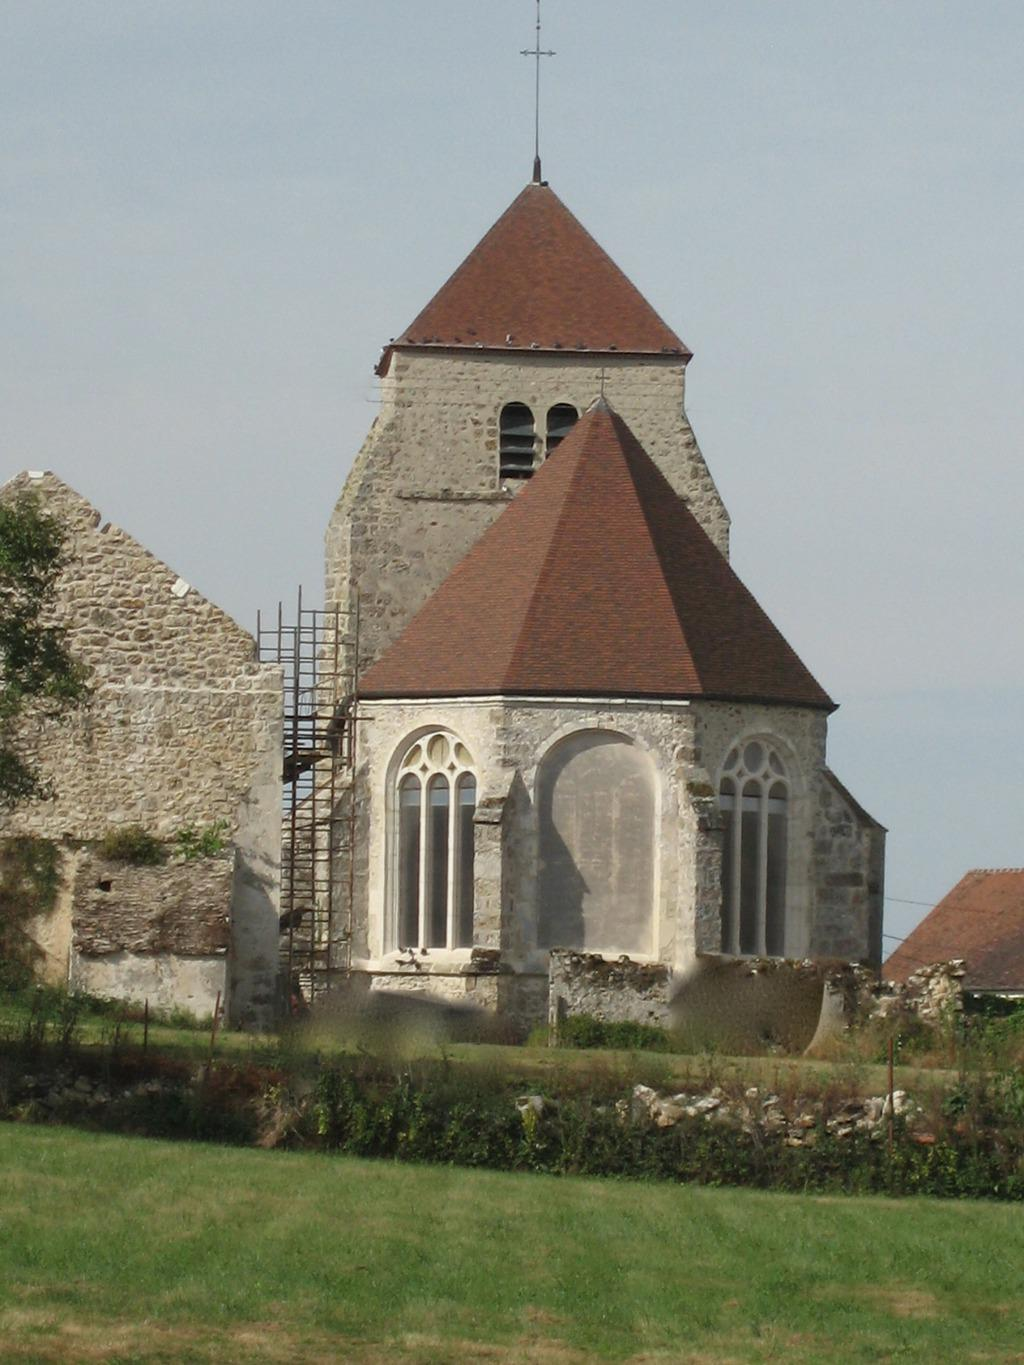 Eglise à Vendieres.